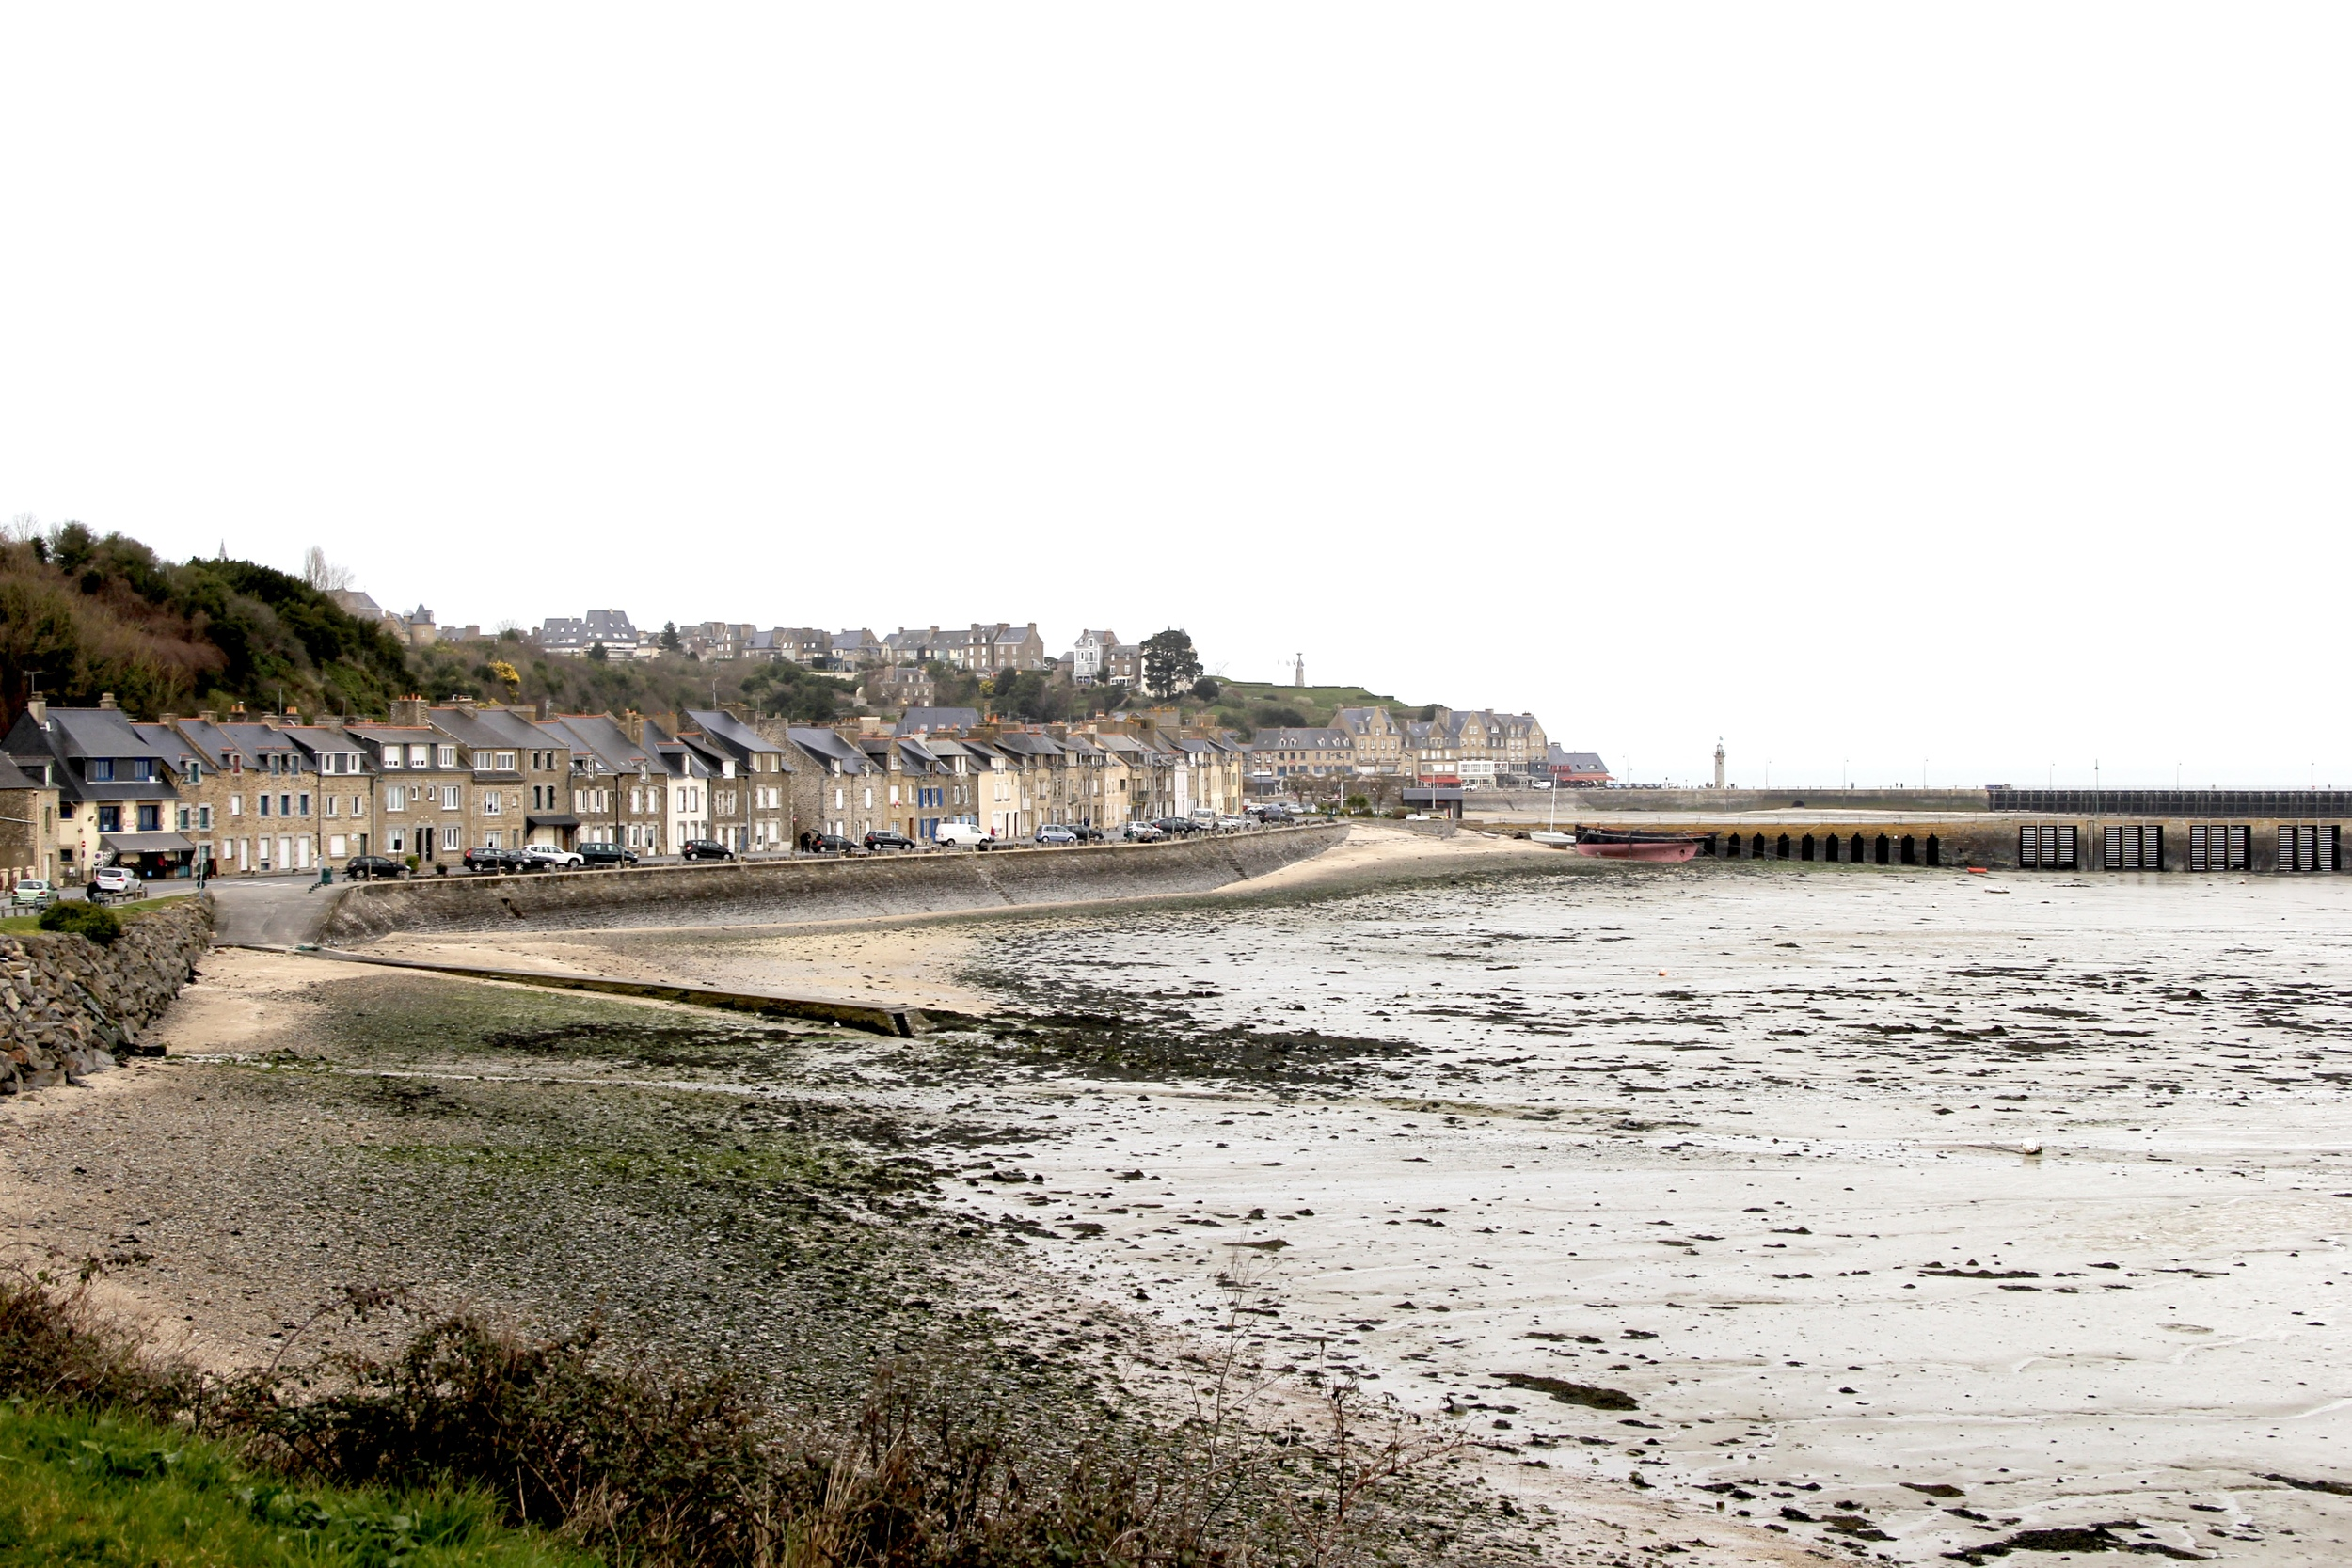 The Oyster town of Cancale